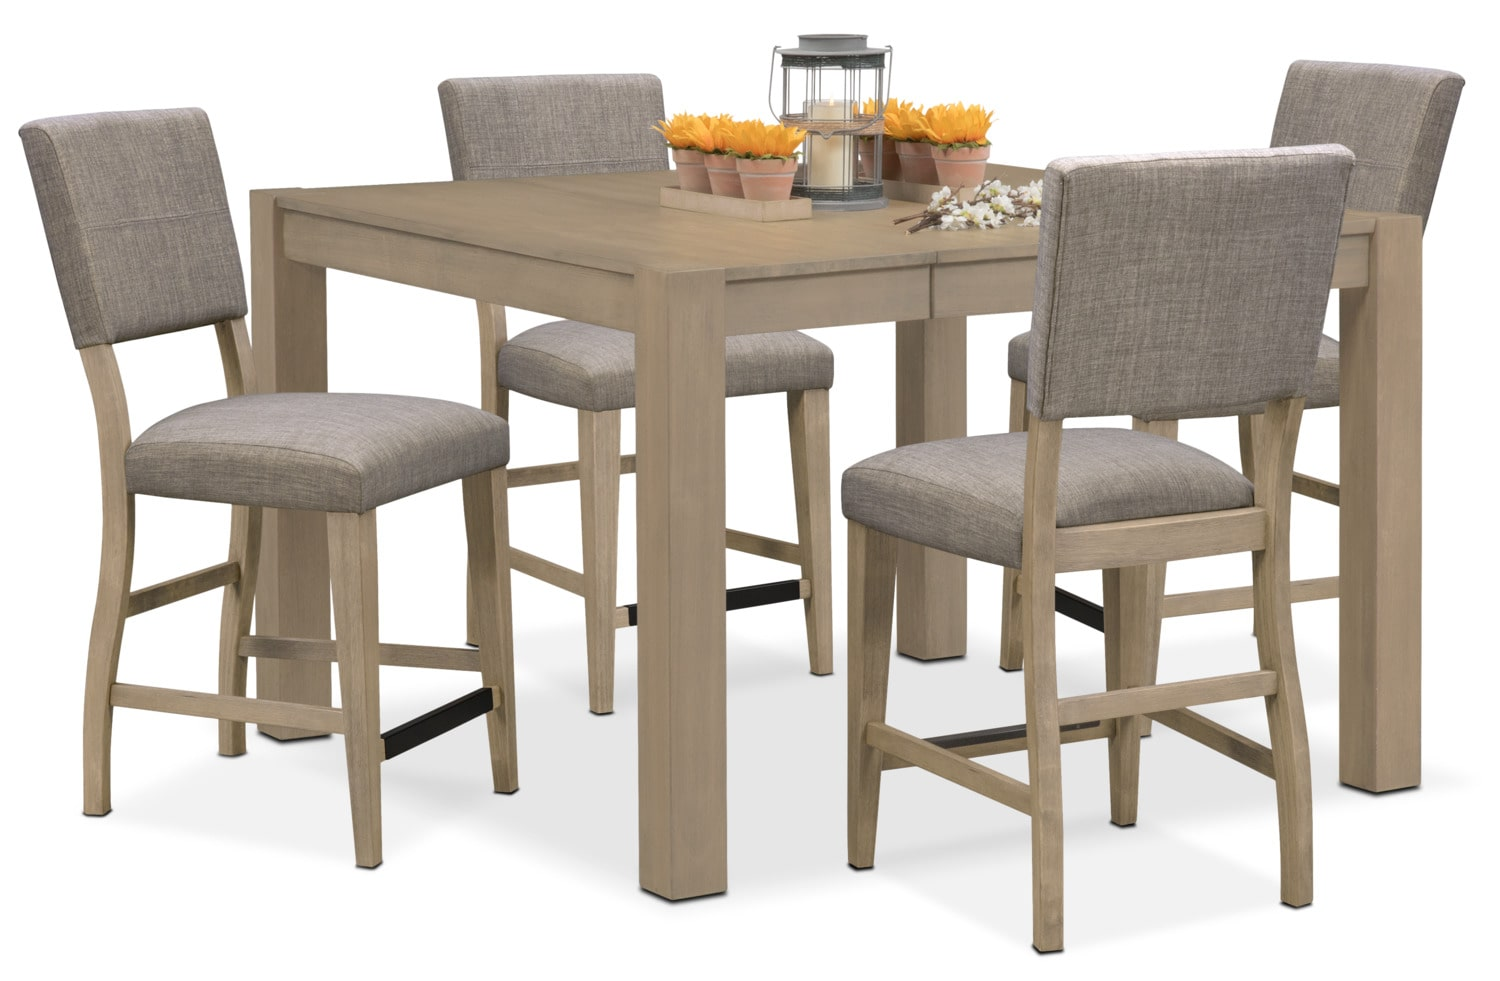 accent chairs for dining room table office staples canada tribeca counter height and 4 upholstered side